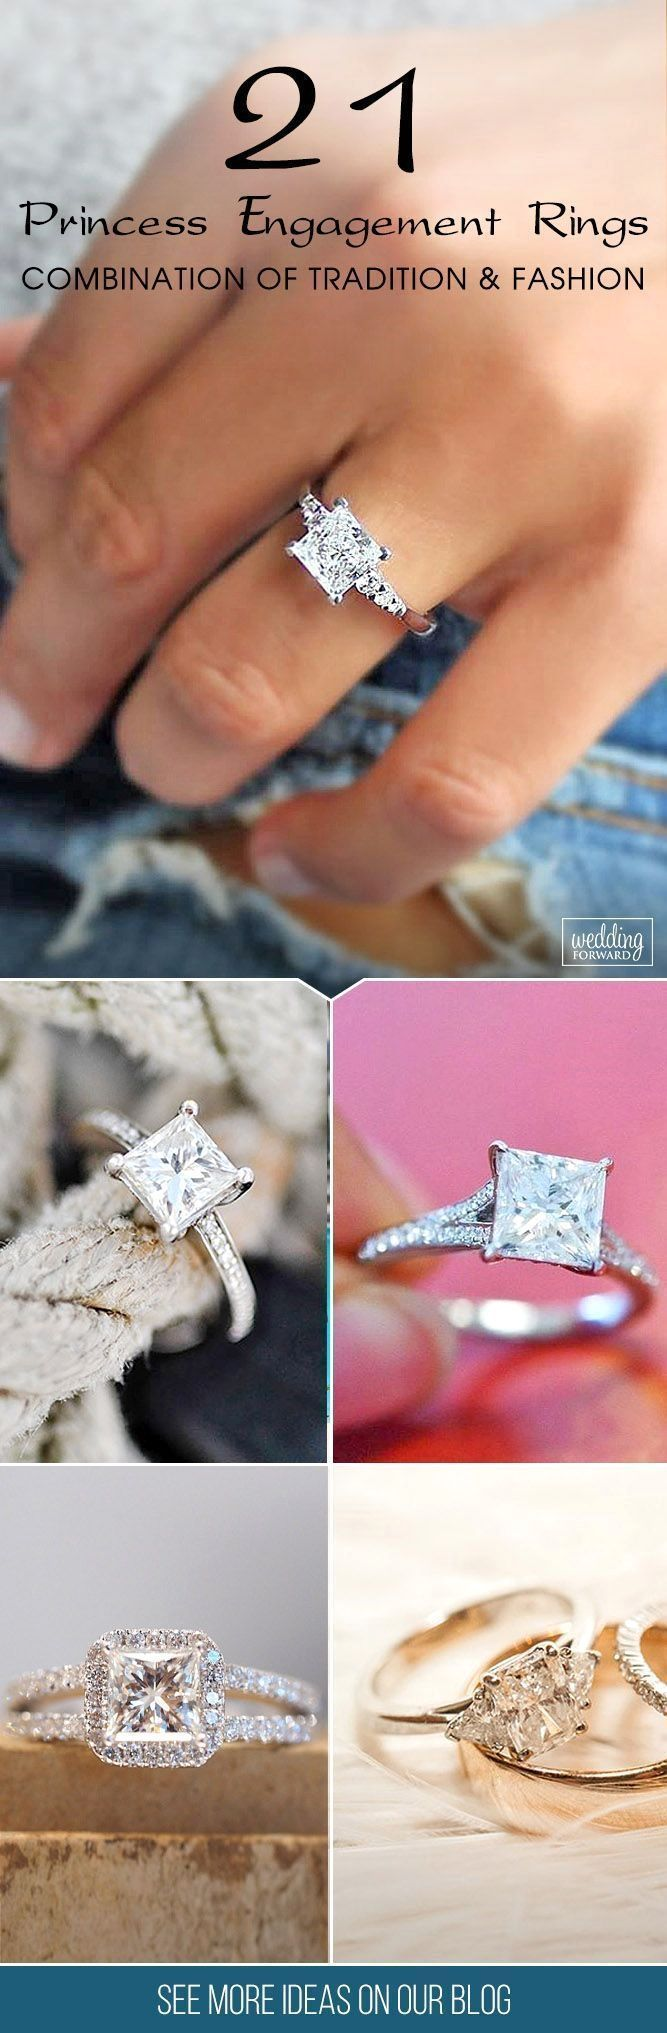 21 Breathtaking Princess Cut Engagement Rings ❤ Princess cut engagement rings are combination of tradition and fashion. Choose princess cut diamond rings you will get unique, modern shape and amazing sparkling appearance for lower price. #amazingrings #princessdiamondengagementrings